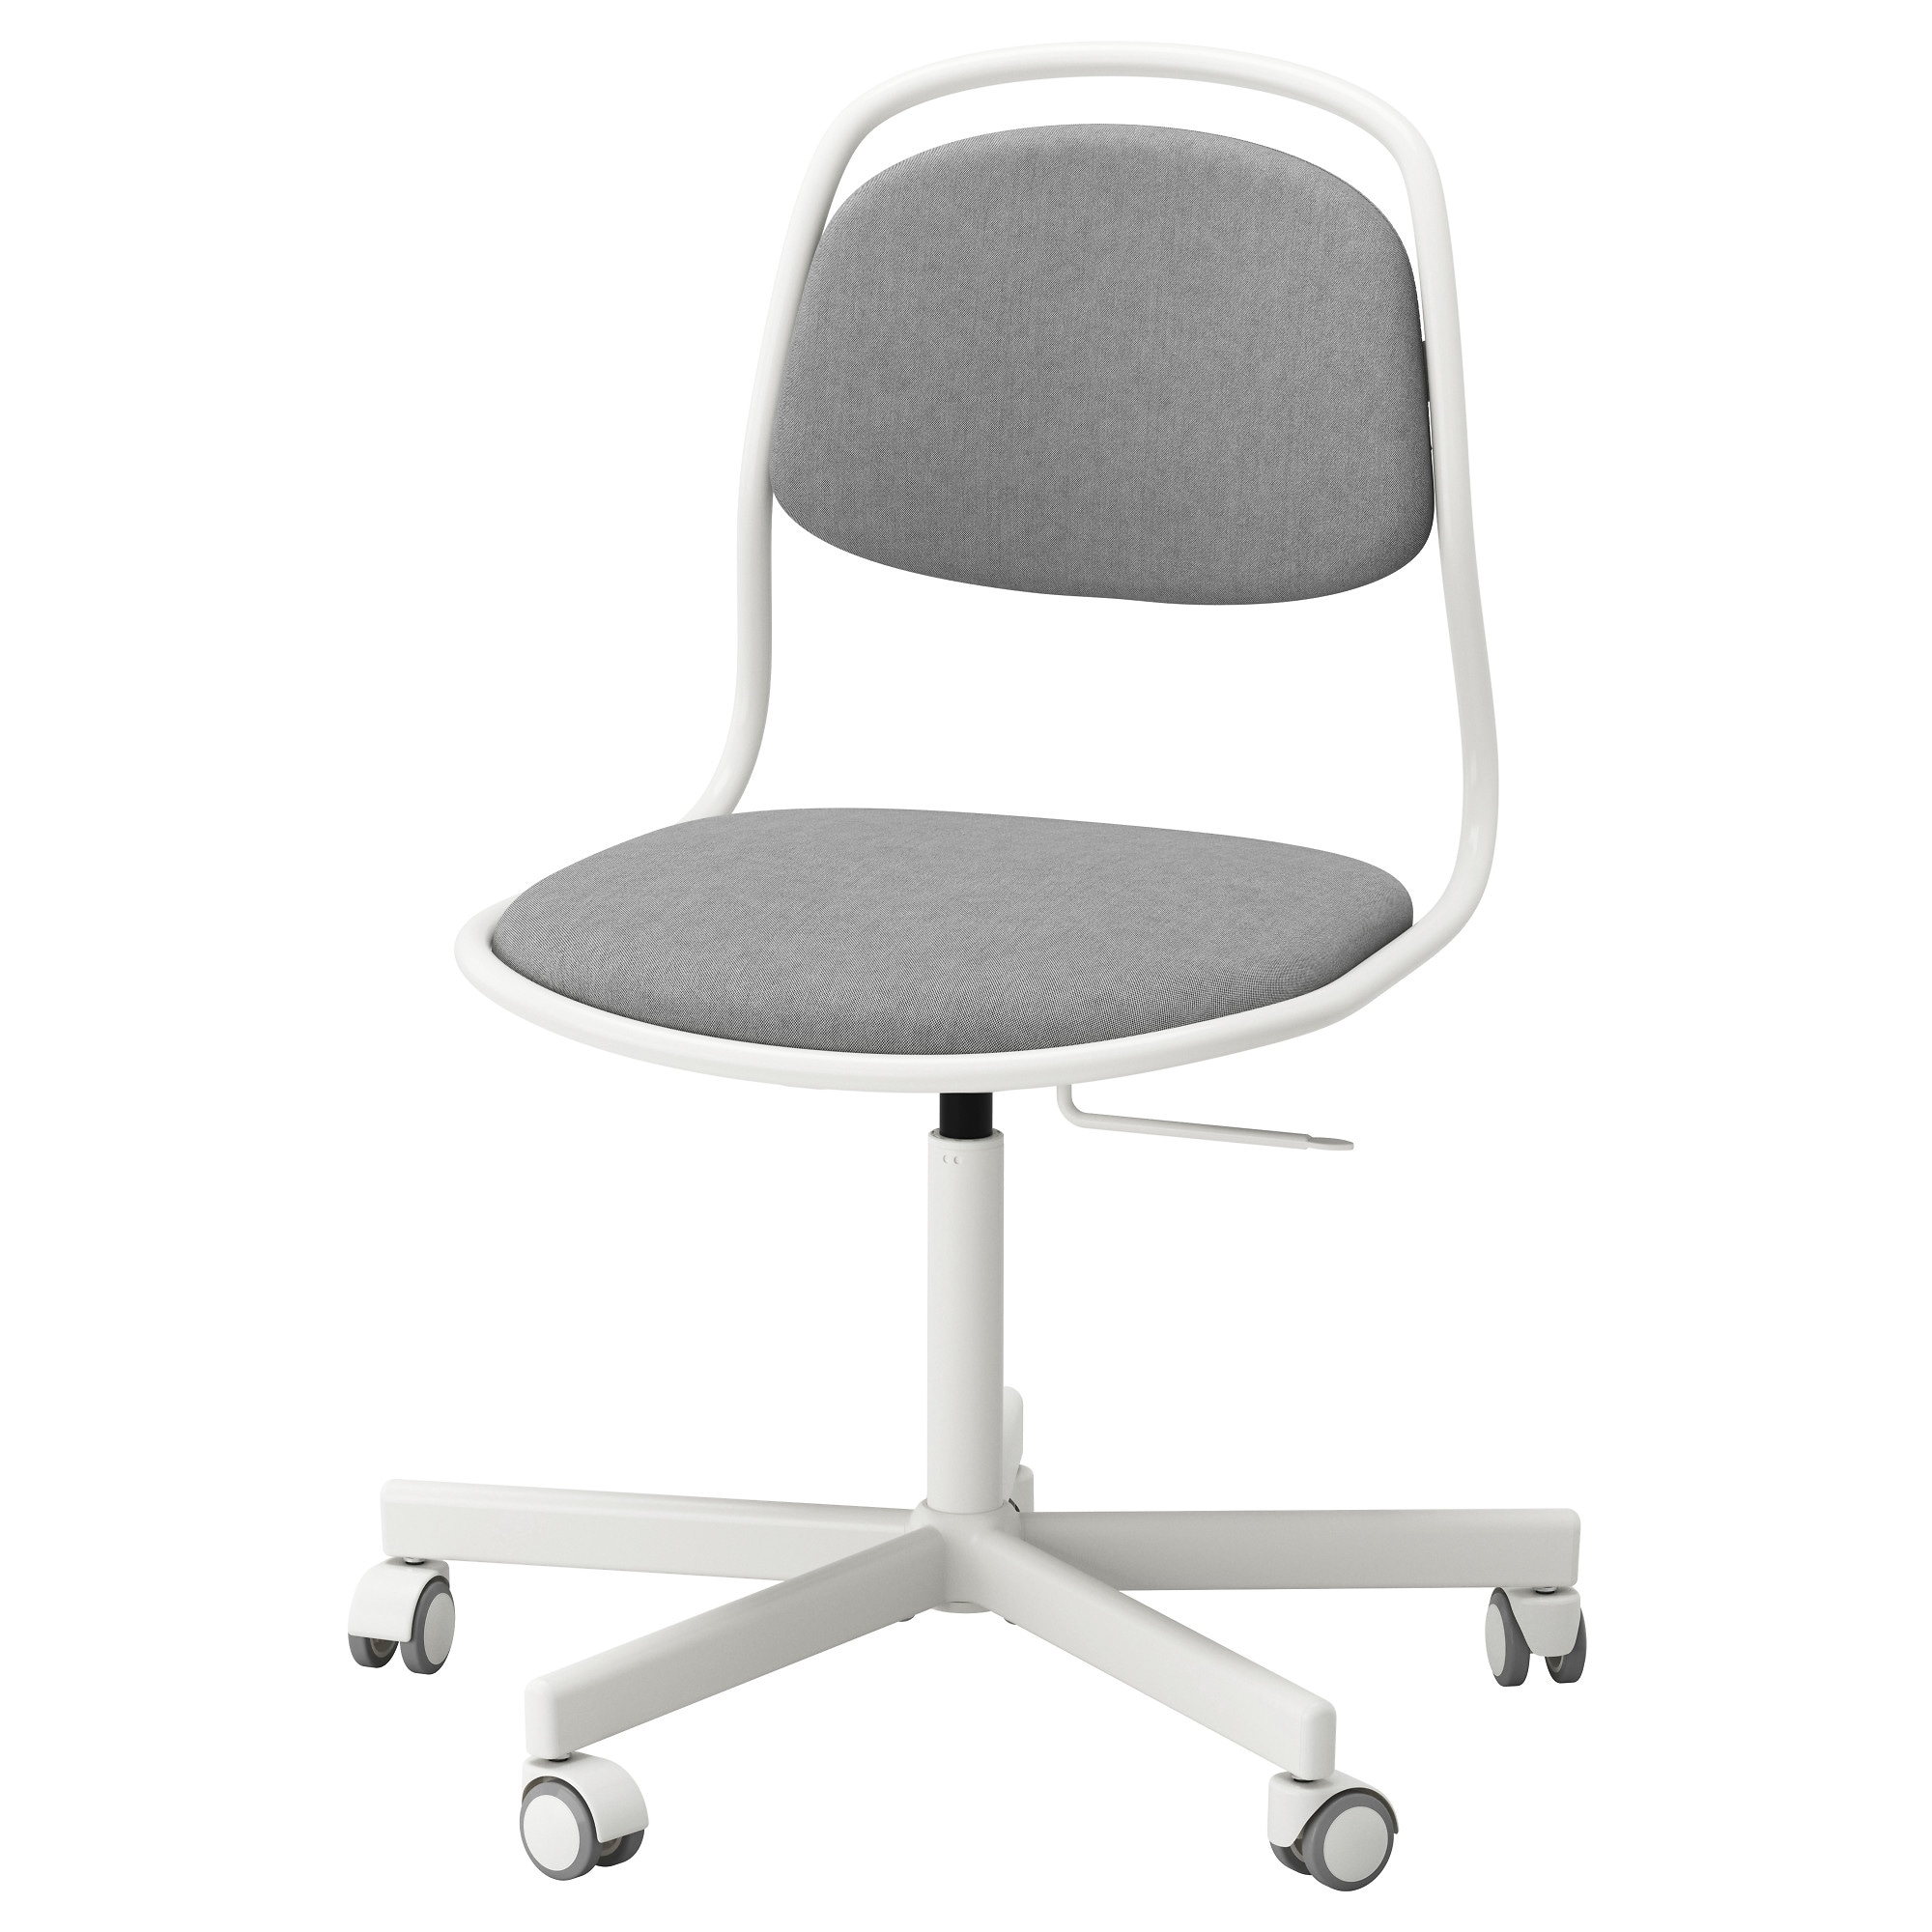 ikea office chairs canada. ikea office chairs canada y